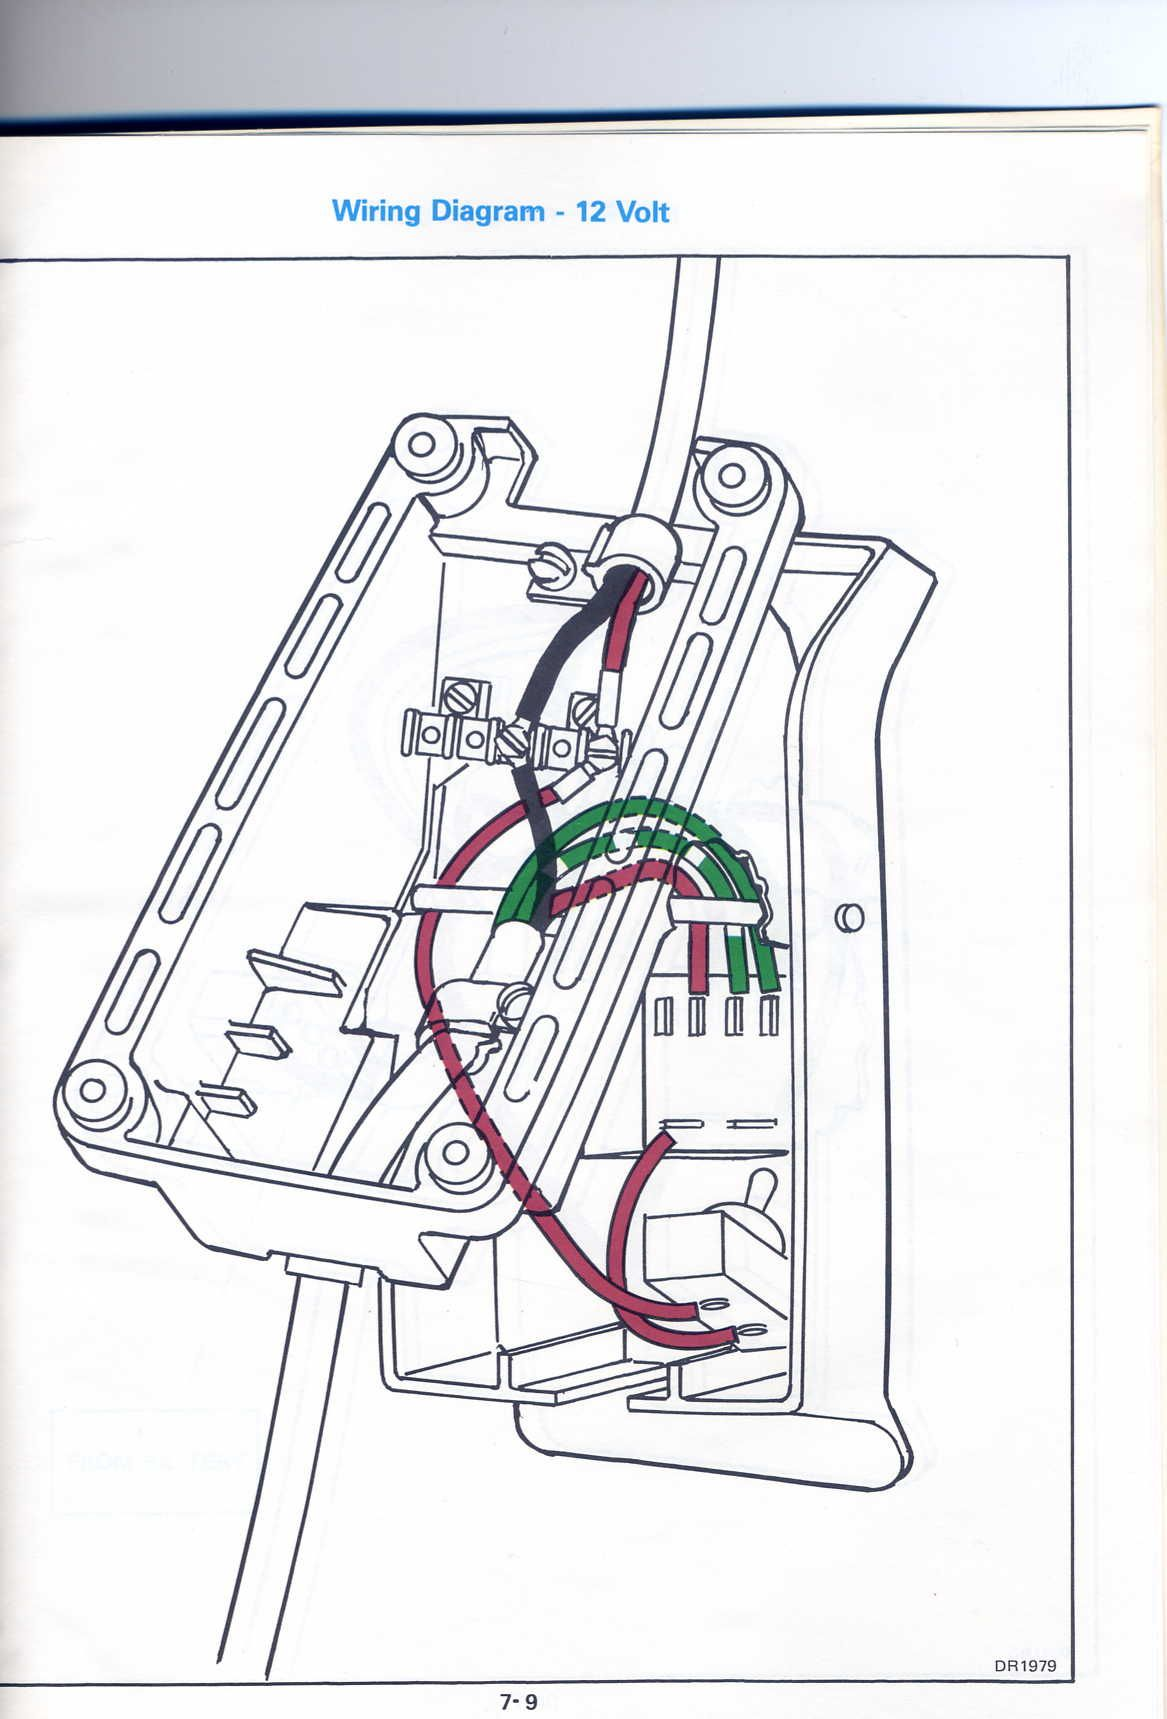 motorguide trolling motor wiring diagram trying to repair a friends 1986 johnson trolling motor model does anyone have a wiring diagram design [ 1167 x 1719 Pixel ]